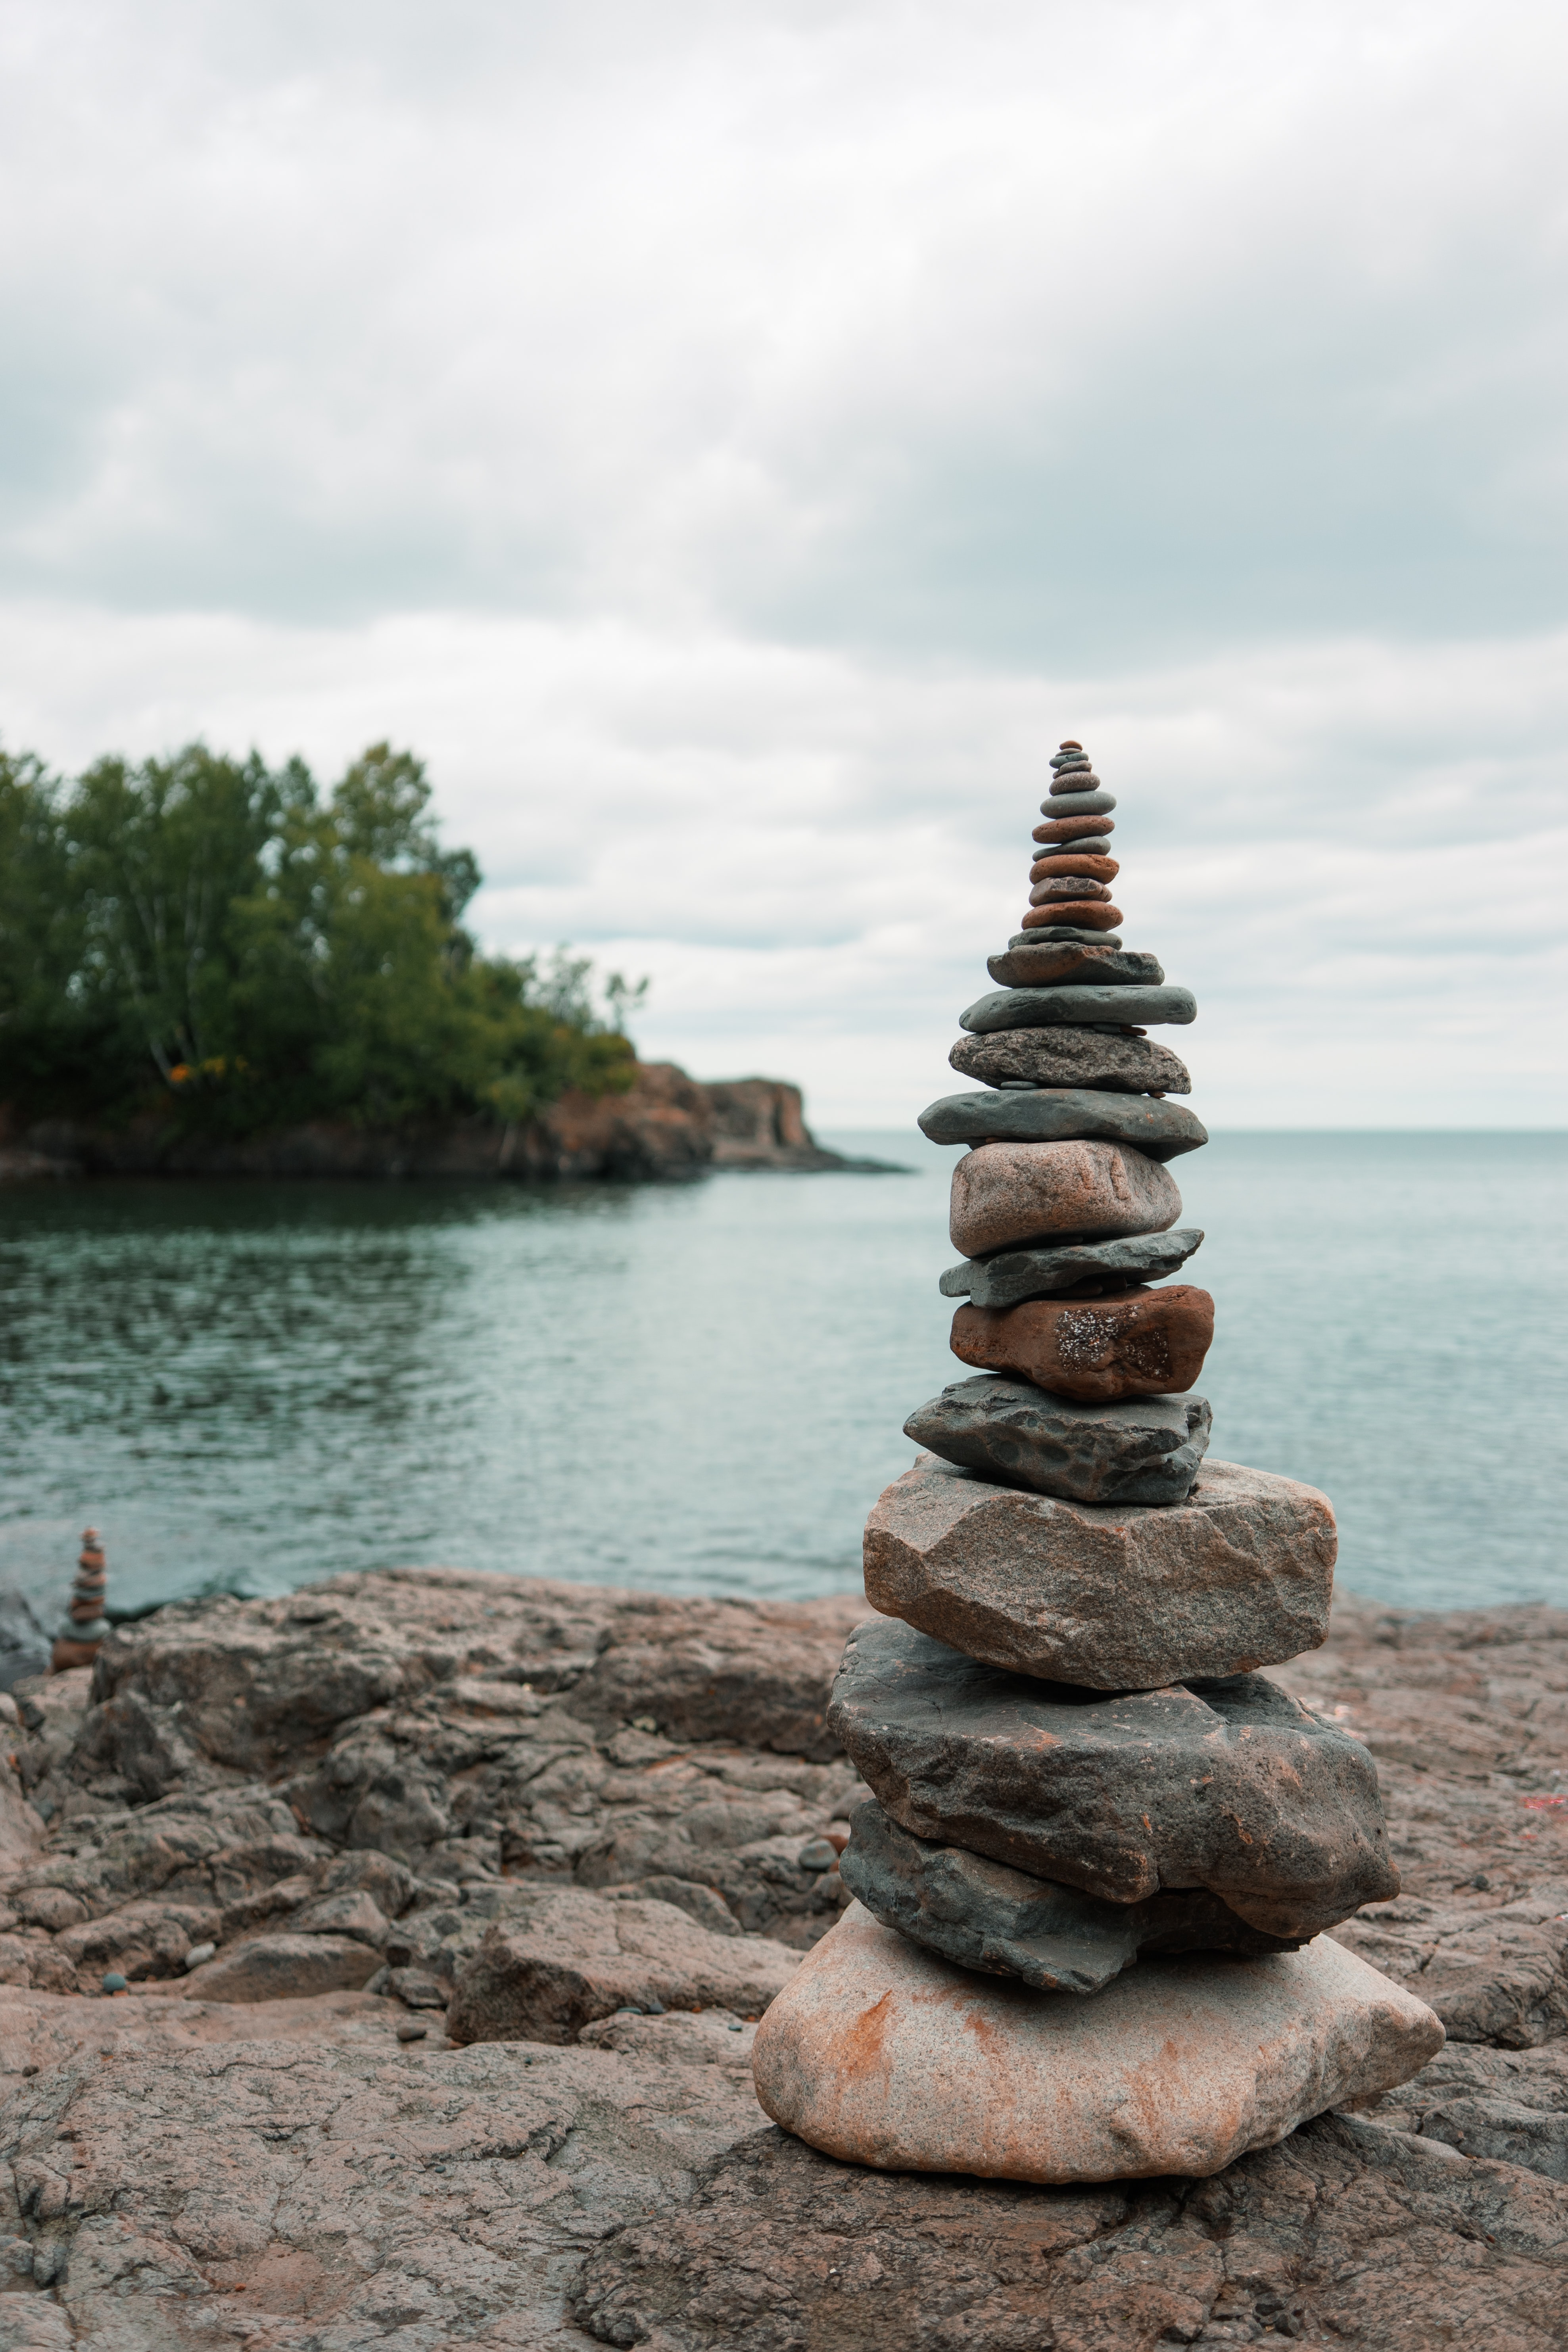 148073 download wallpaper Nature, Stones, Sky, Sea, Balance, Harmony screensavers and pictures for free